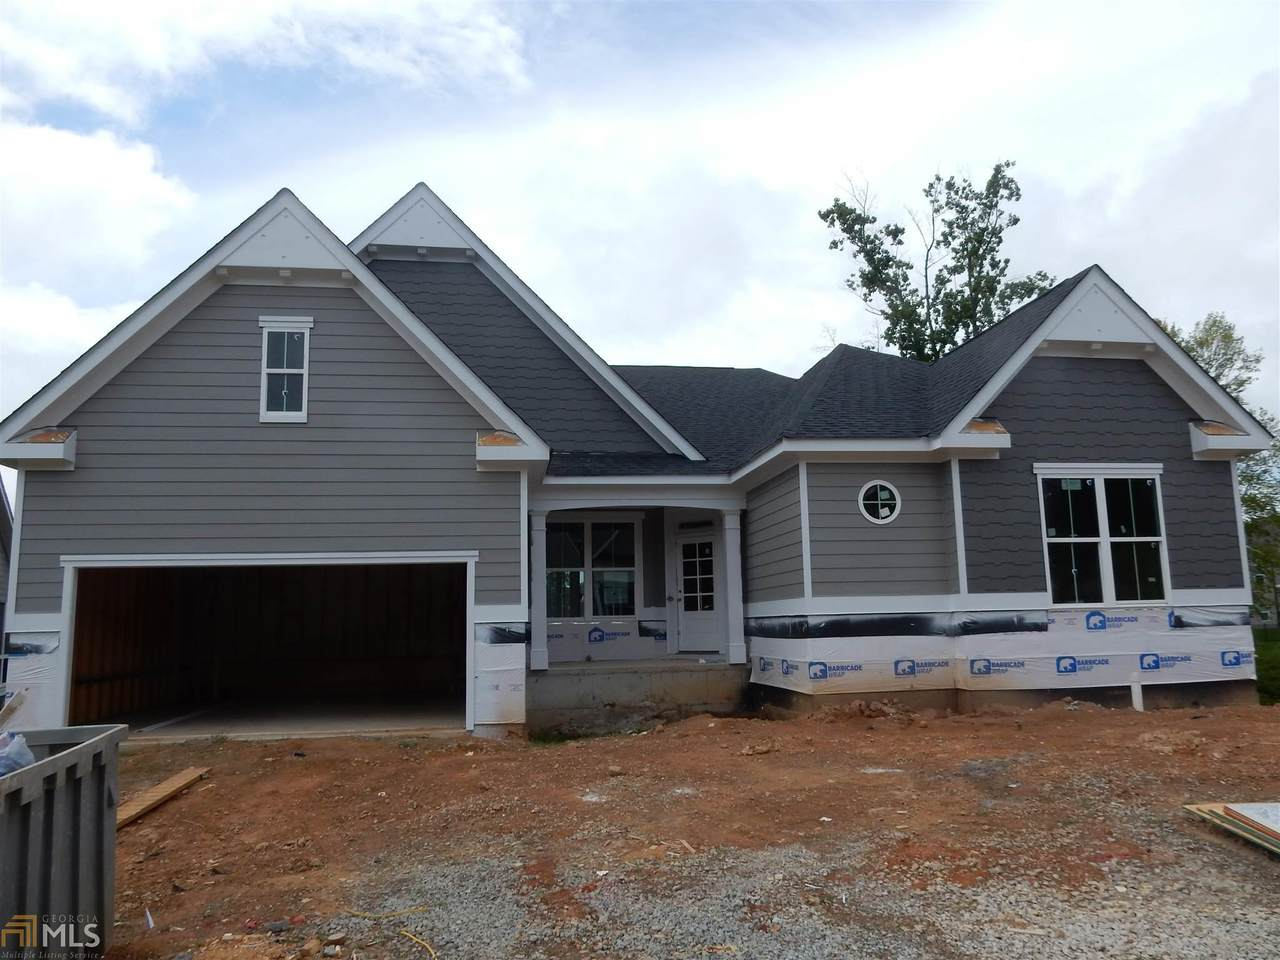 7270 Red Maple Ct - Photo 1